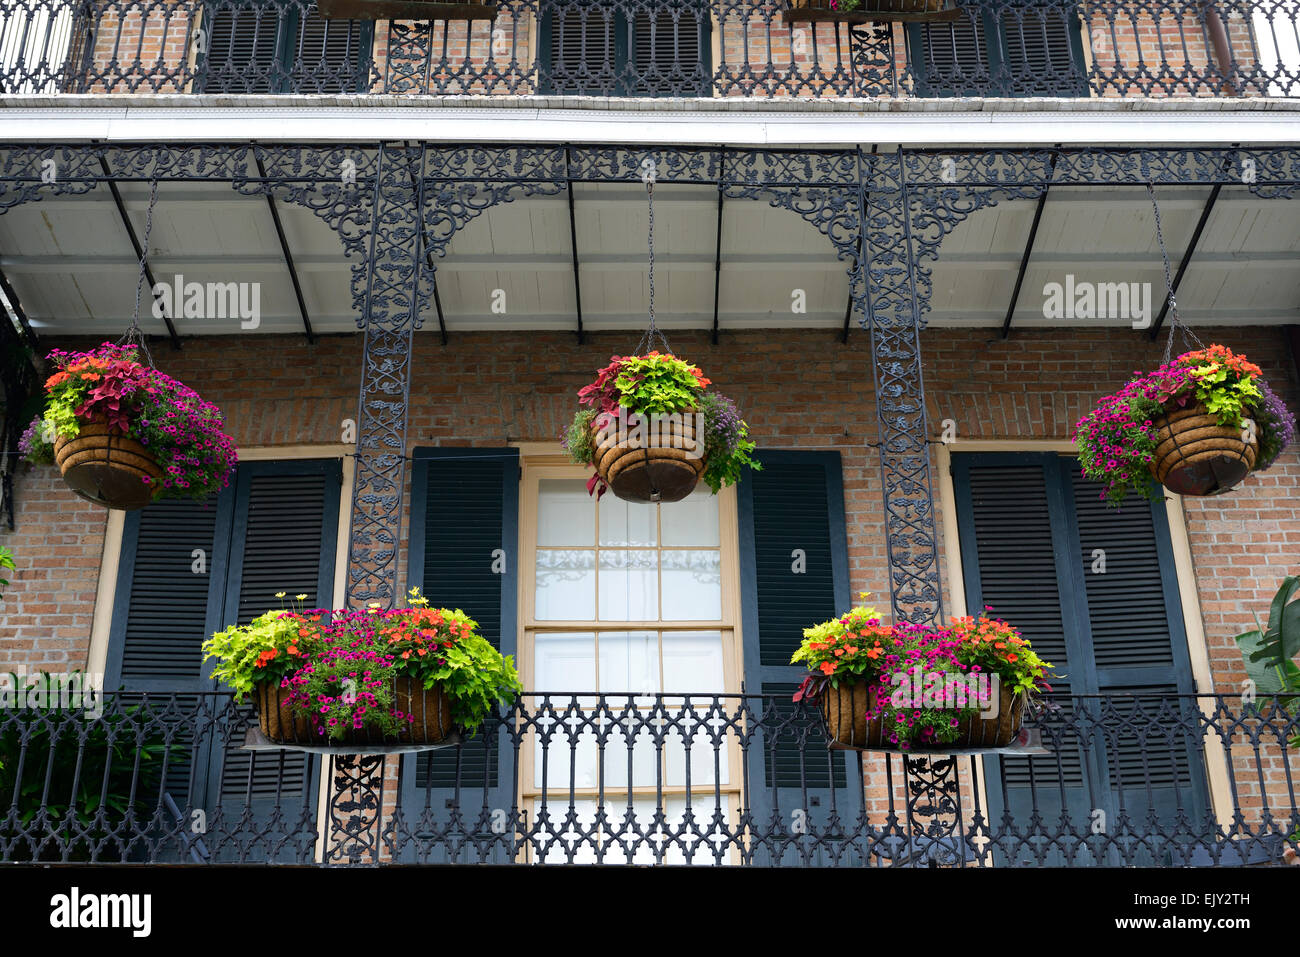 Hanging Baskets Planters Balcony Balconies Decorate French Quarter Stock Photo Royalty Free